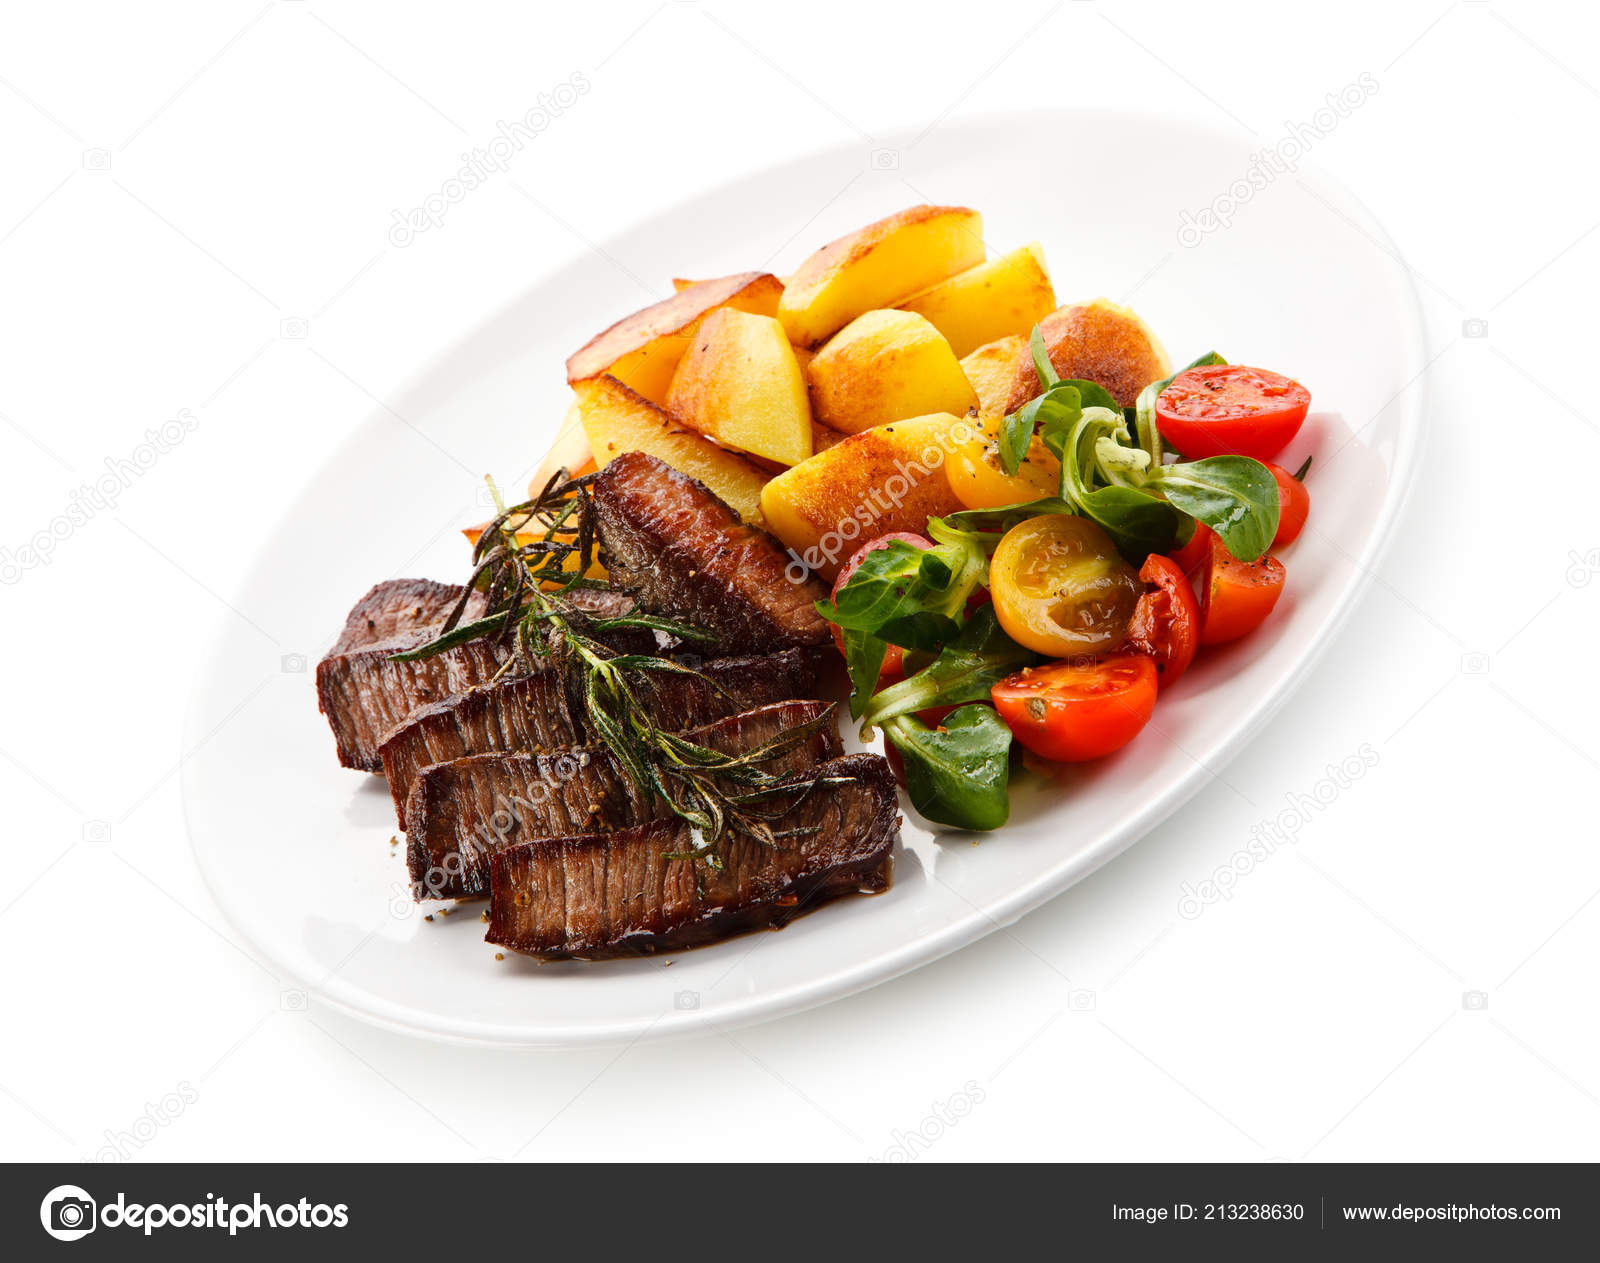 Sliced Beef Steak Baked Potatoes Fresh Vegetables White Plate Stock Photo C Gbh007 213238630